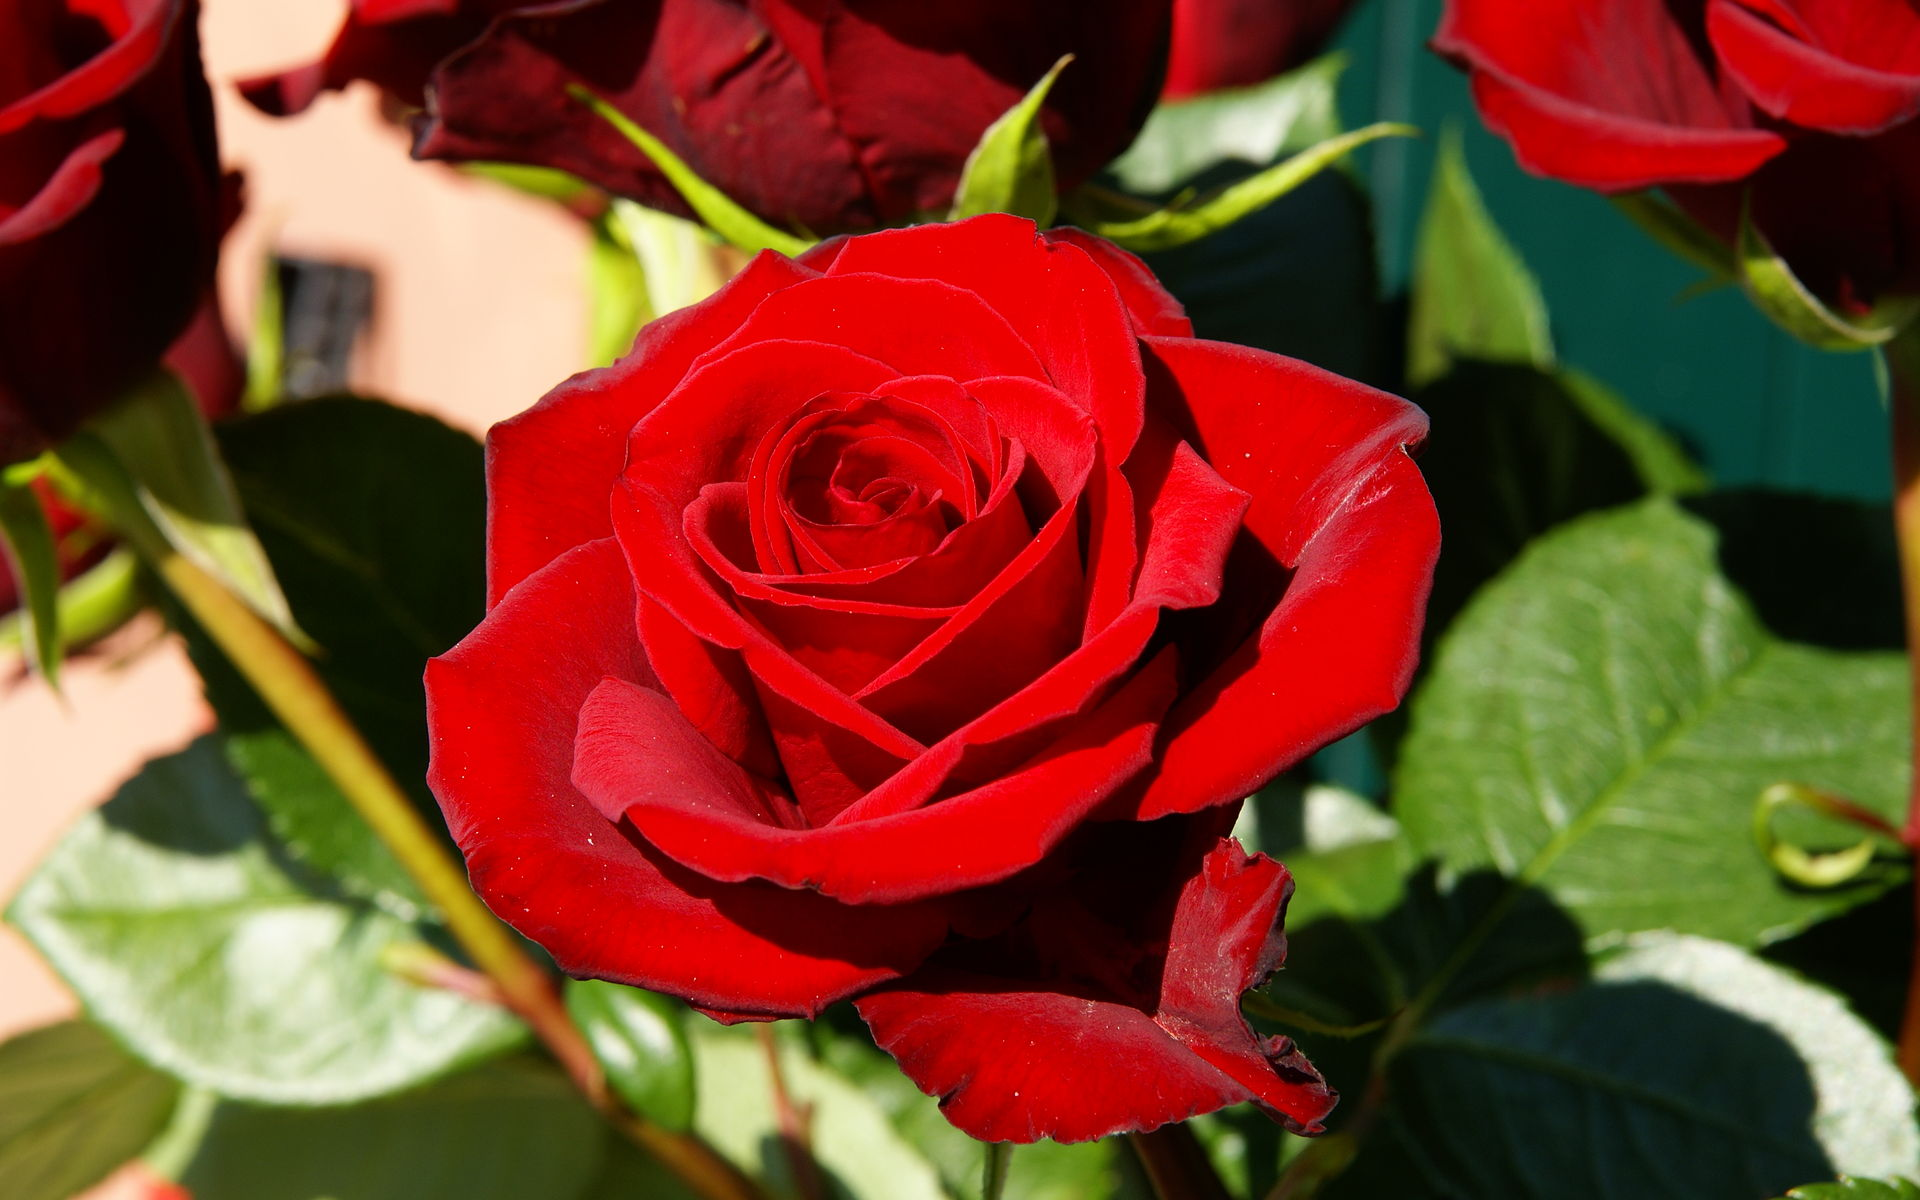 red rose flower images  hd wallpaper  hdflowerwallpaper, Beautiful flower